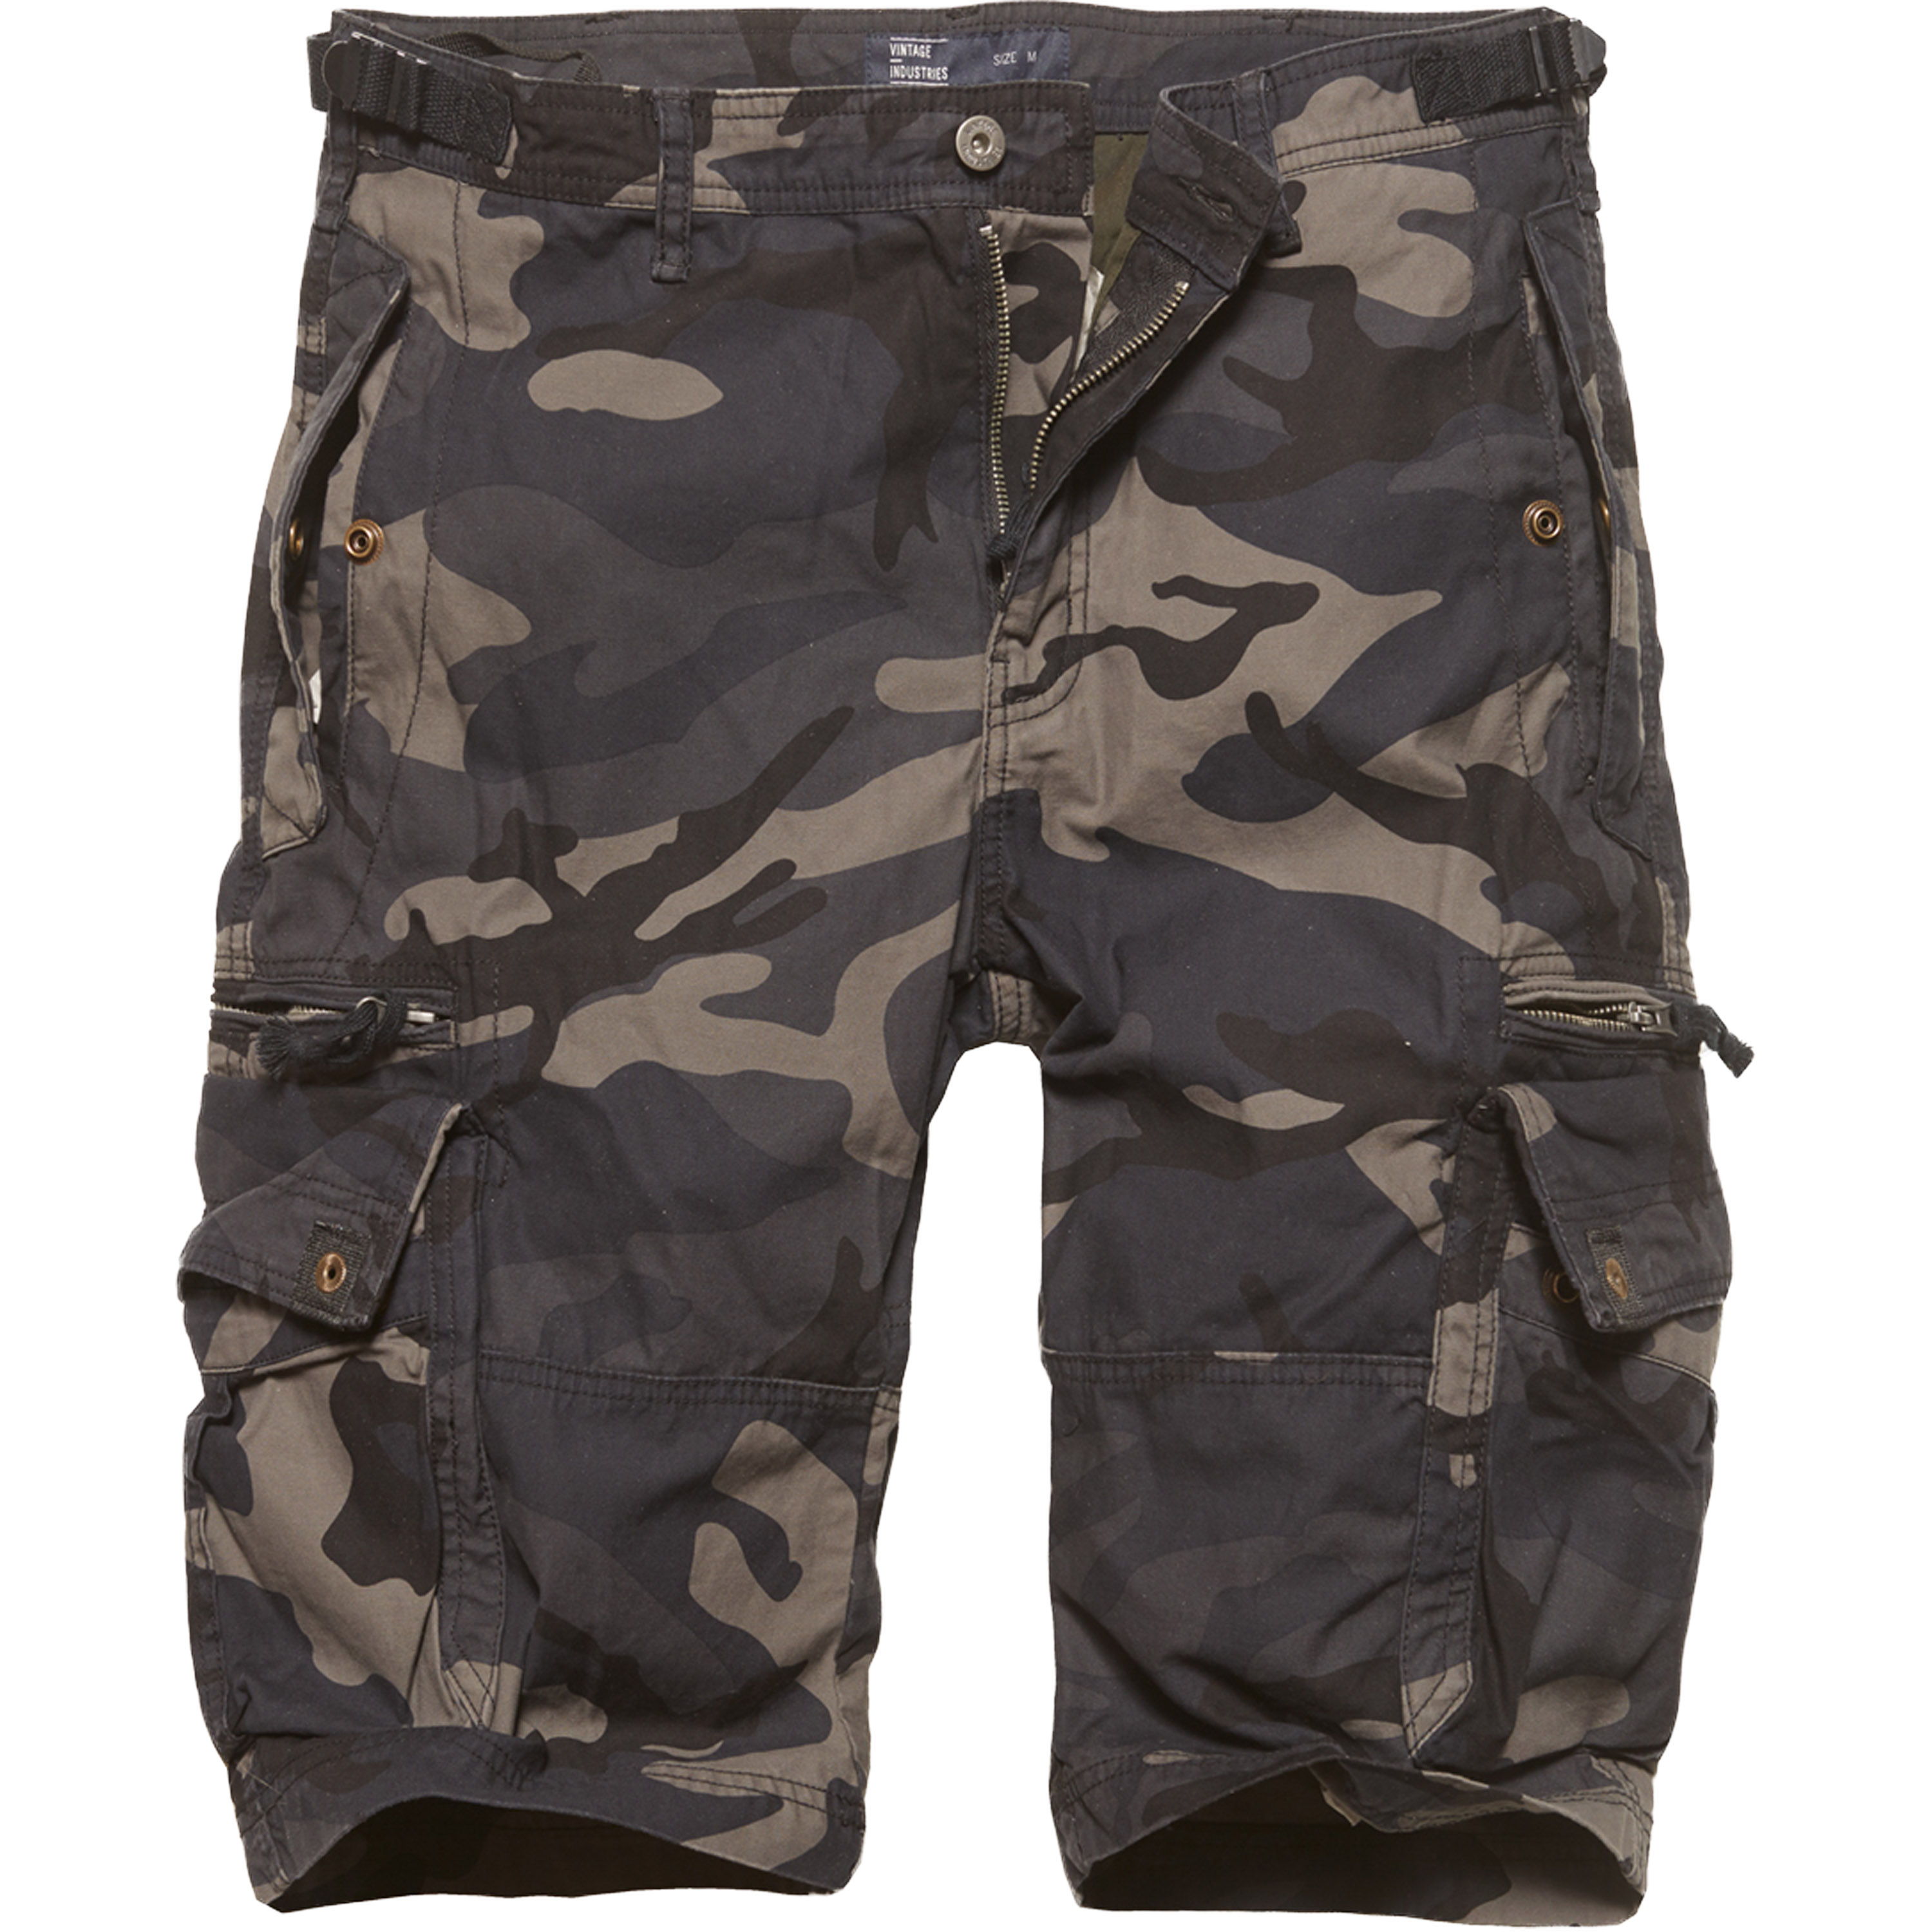 Vintage Industries Shorts Gandor dark camo